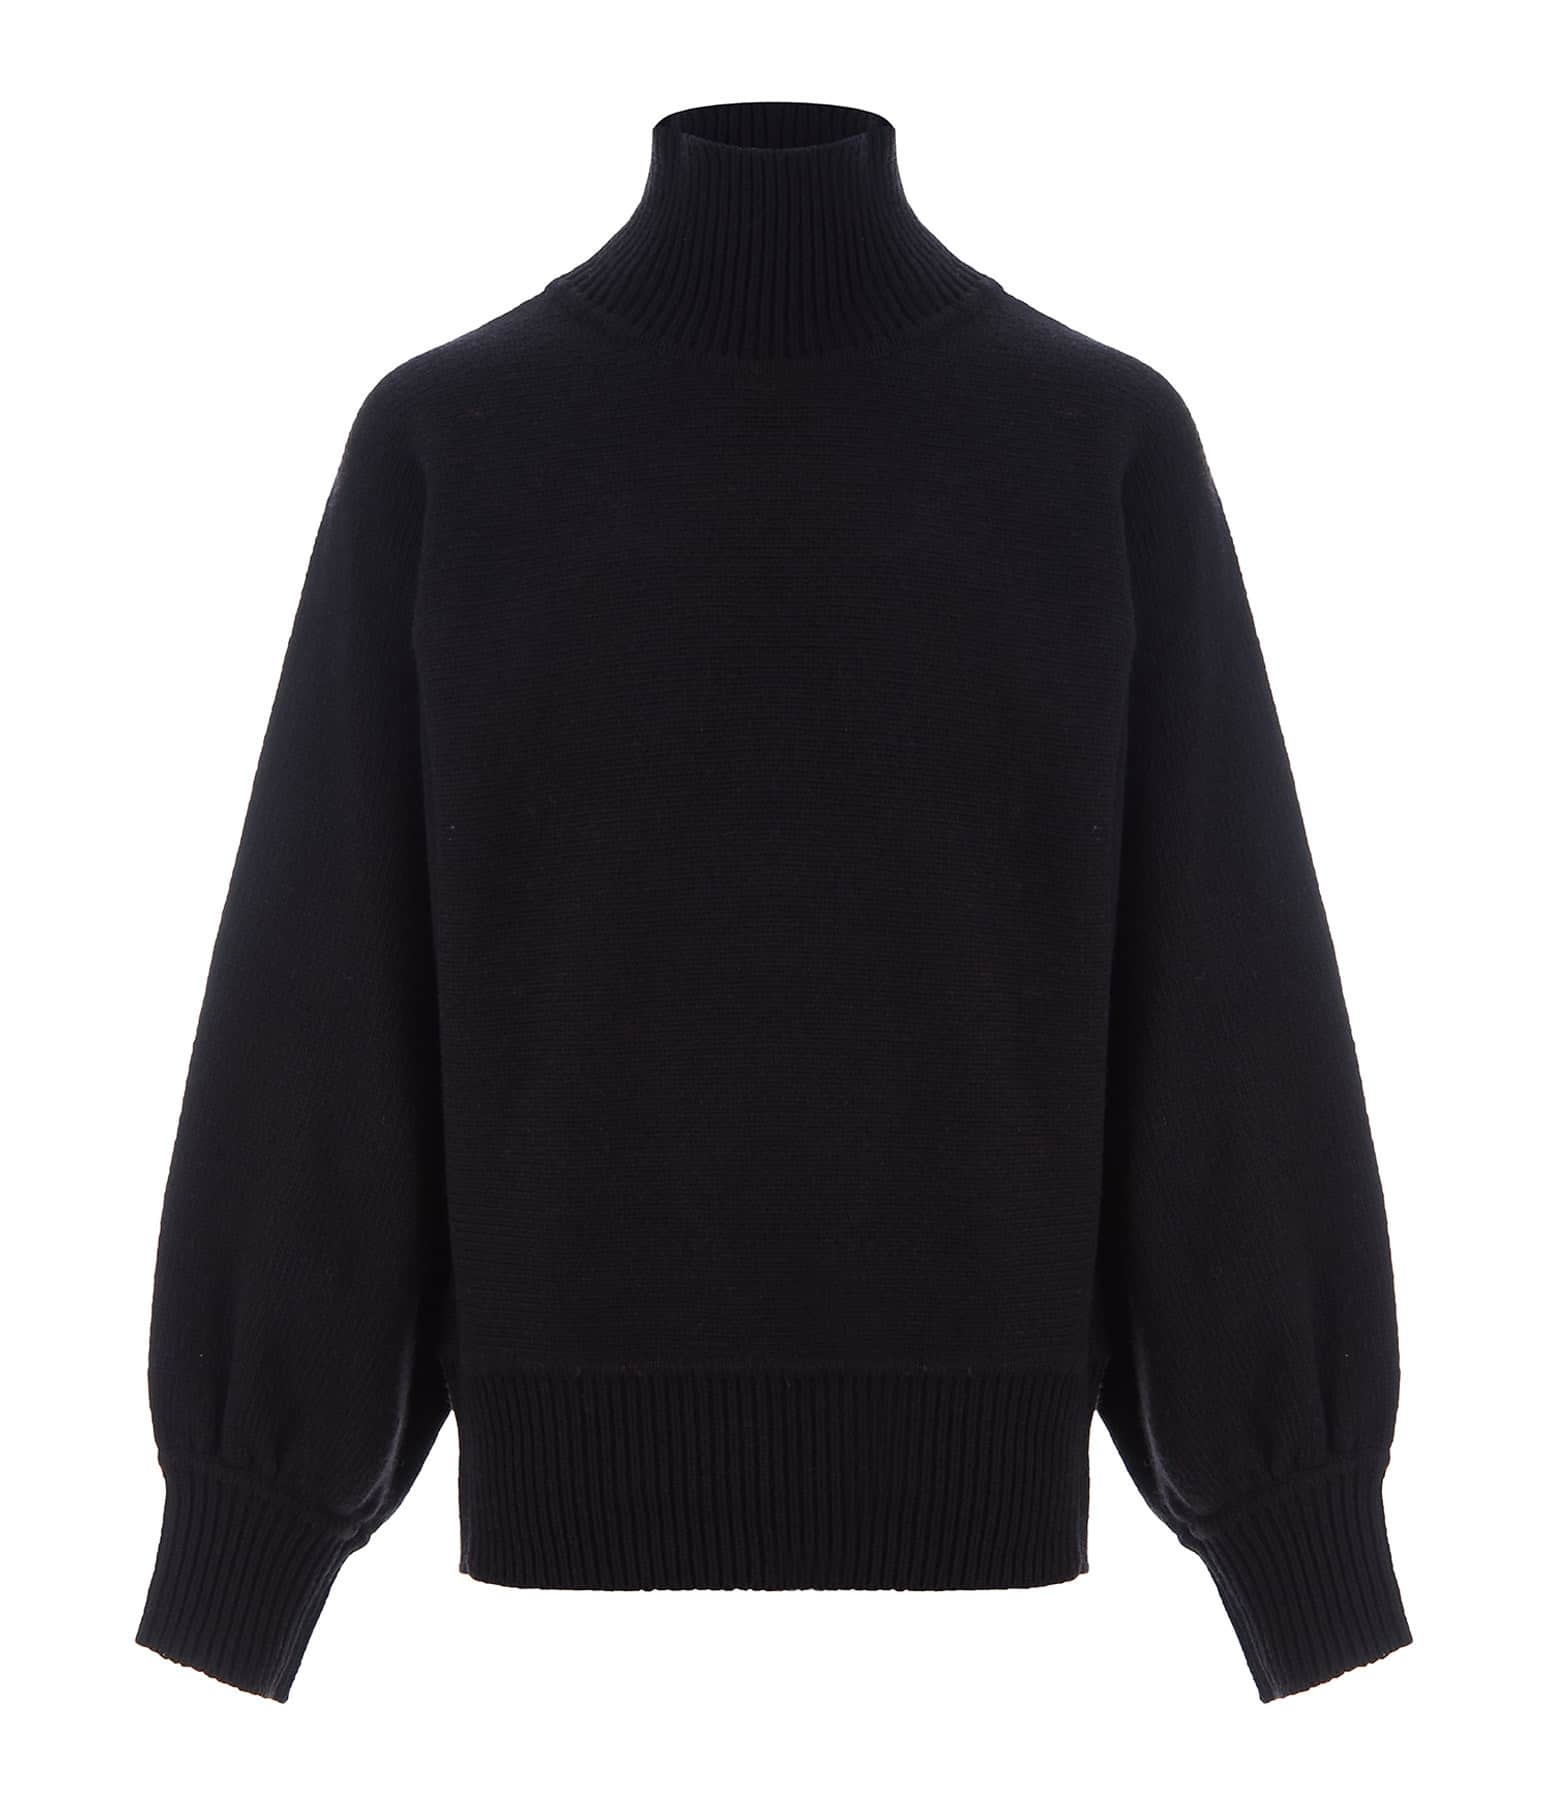 MADE IN TOMBOY - Pull Didi Col Roulé Laine Noir